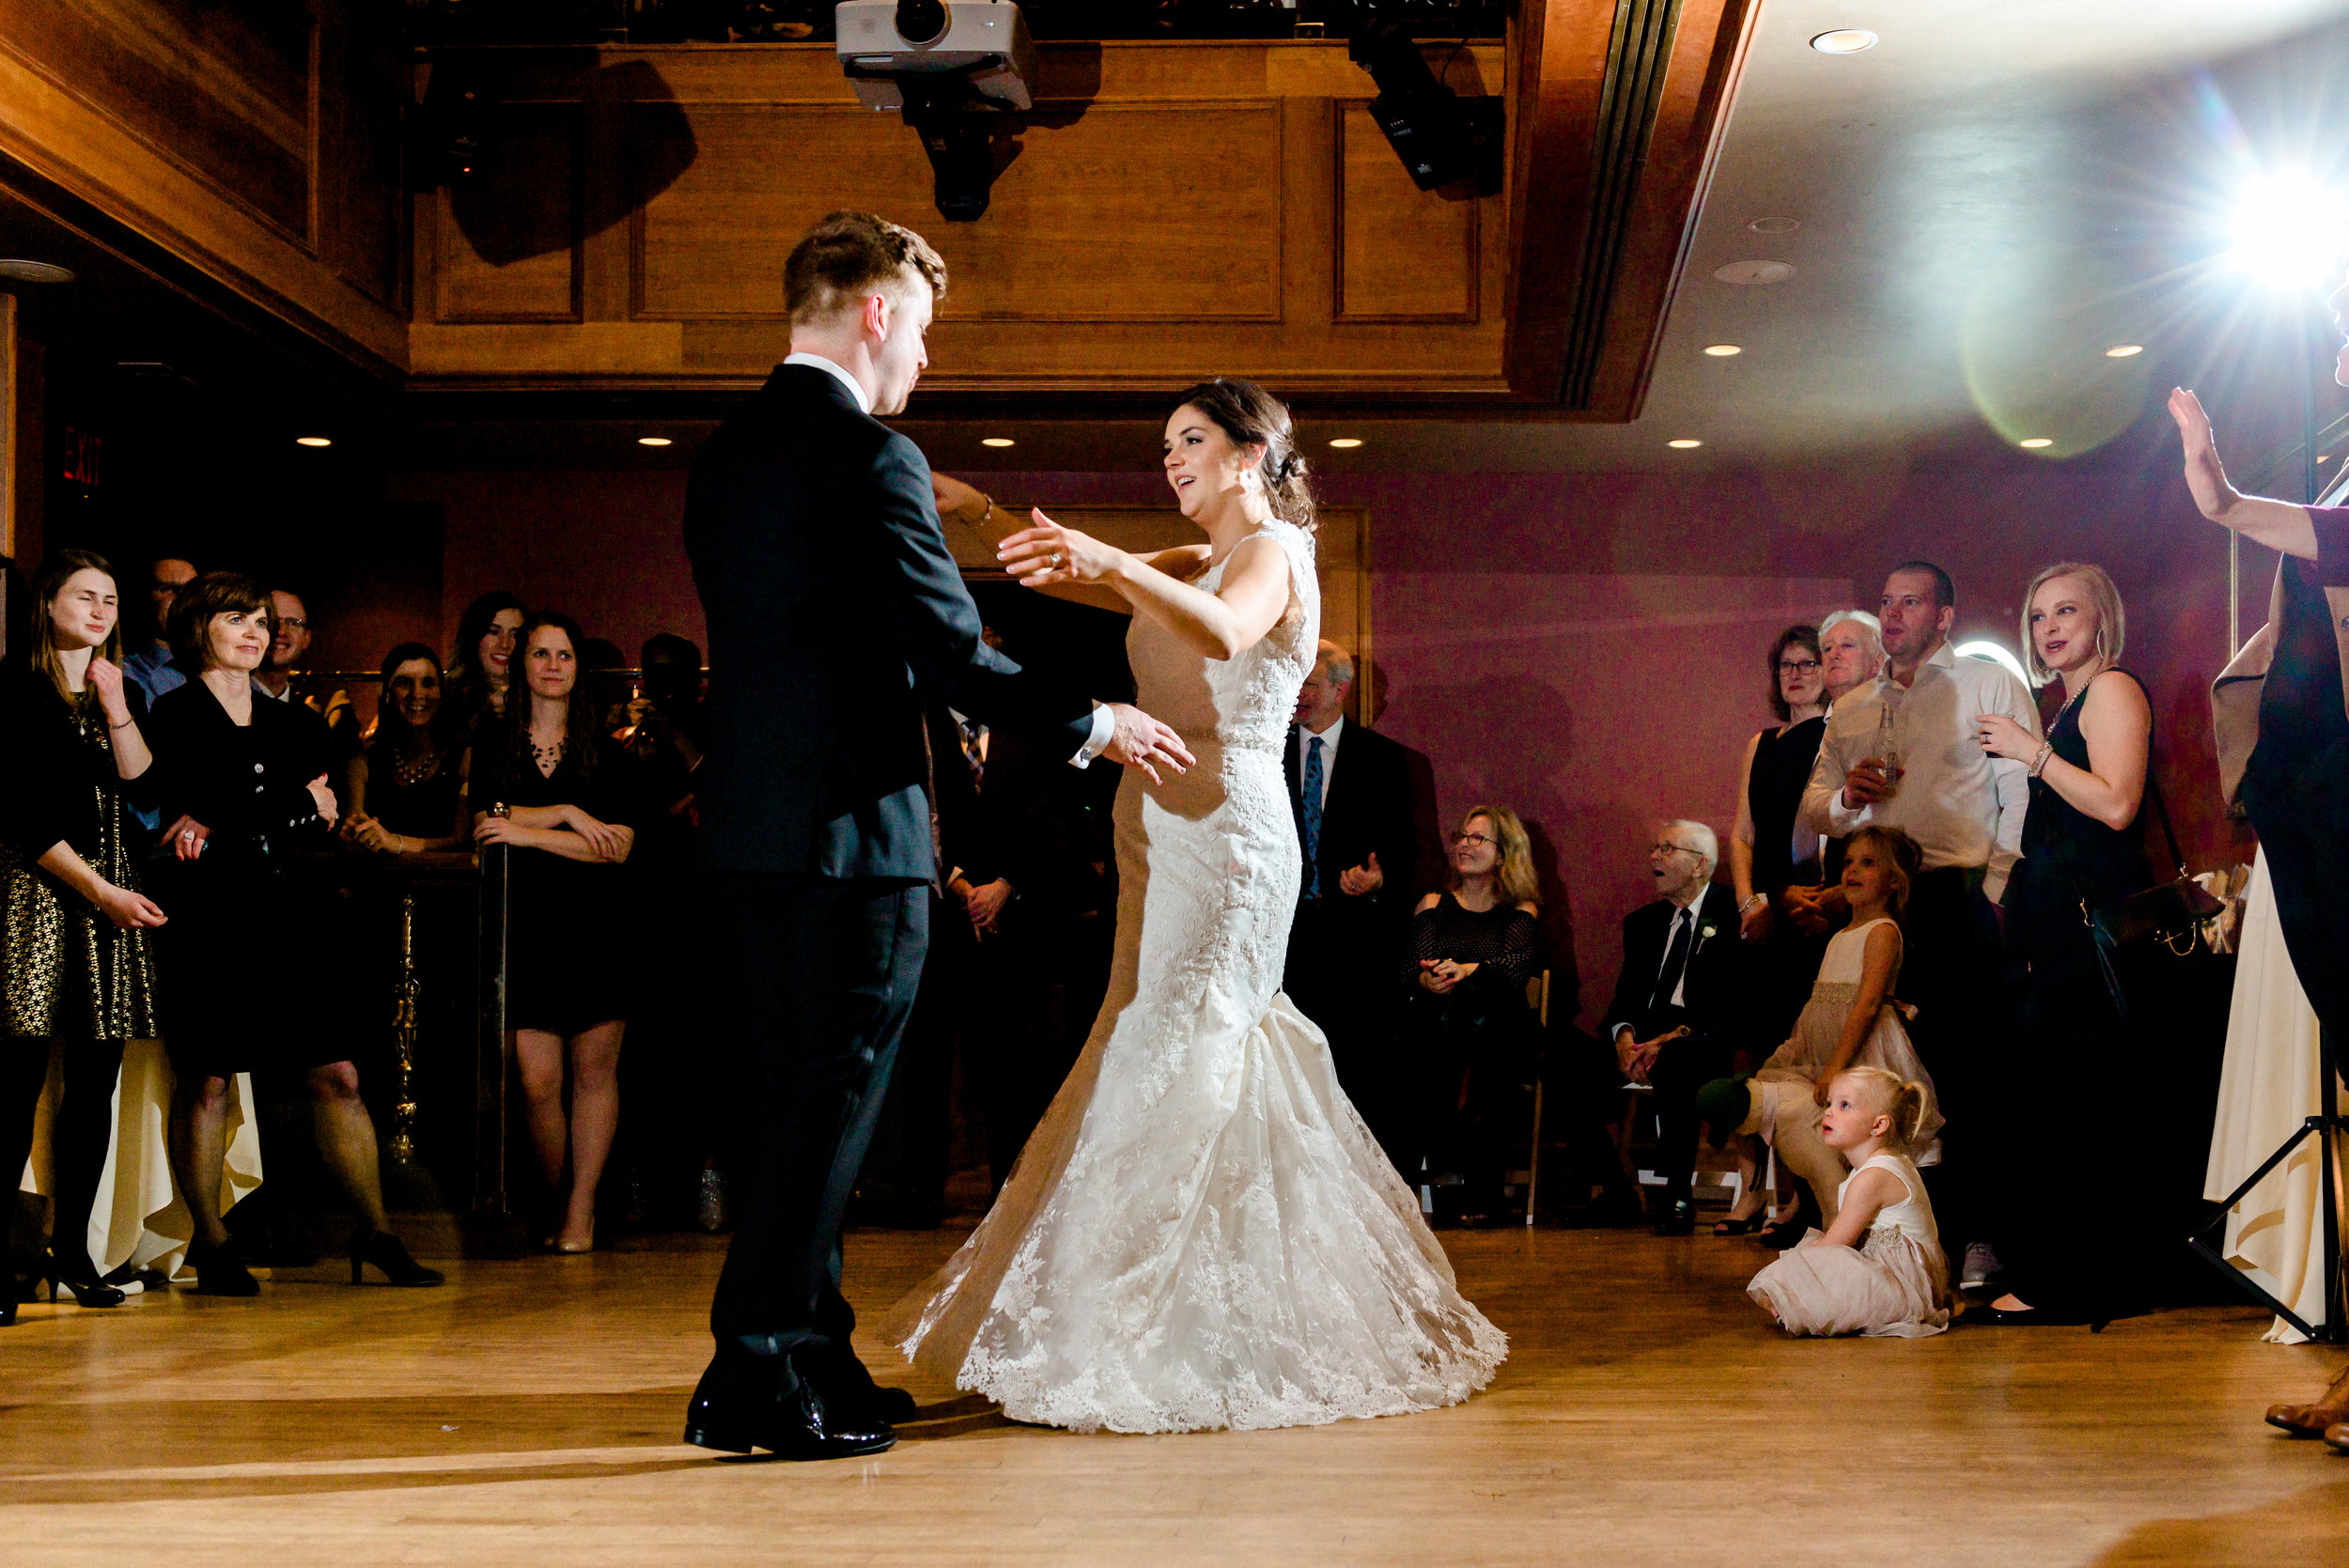 Bride and Groom First Dance in Carriage House at Van Dusen Mansion Wedding - MN Wedding Photographer